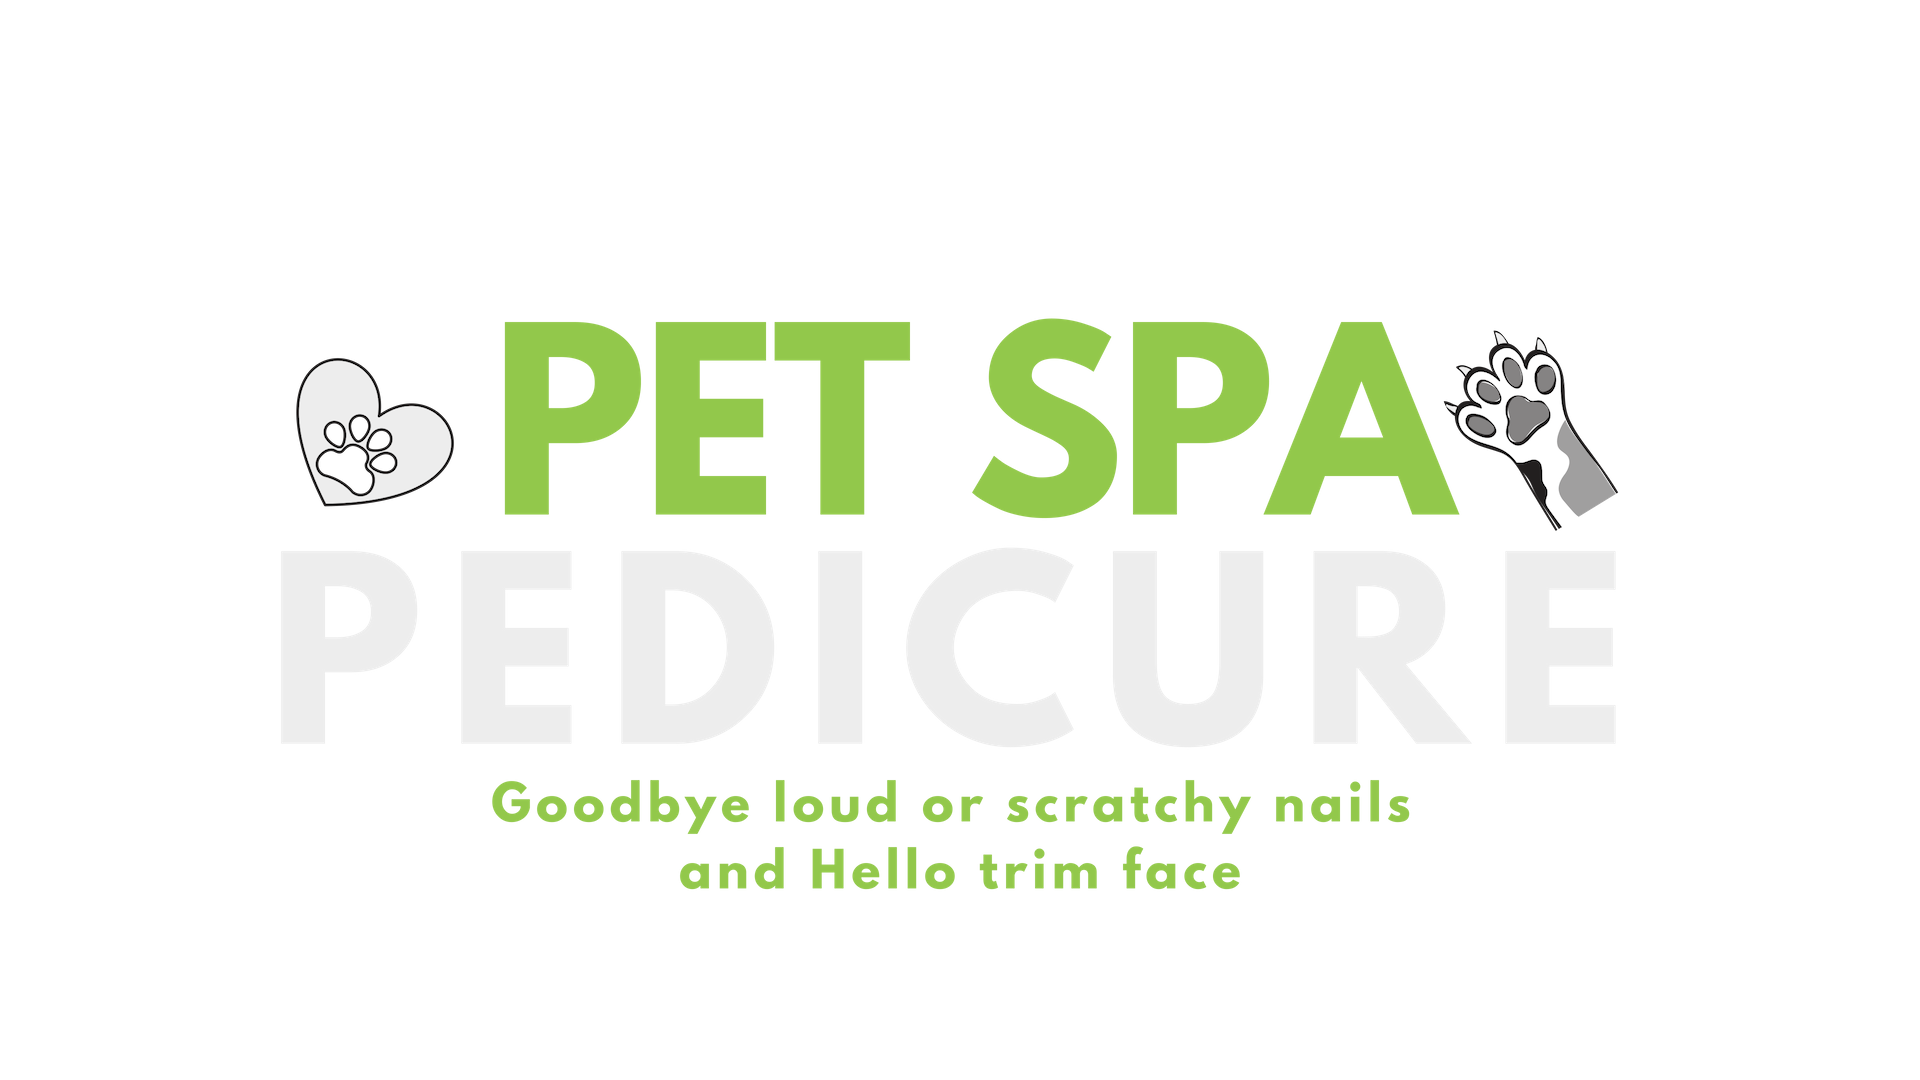 - Nail trim, face & feet trim and bath. Potty Break included.Small Dog (35lb or less) - $82Medium Dog (36lb-60lb) - $94Large Dog (61lb- 100lb) - $106**For pups over 100lbs, please call for pricing.